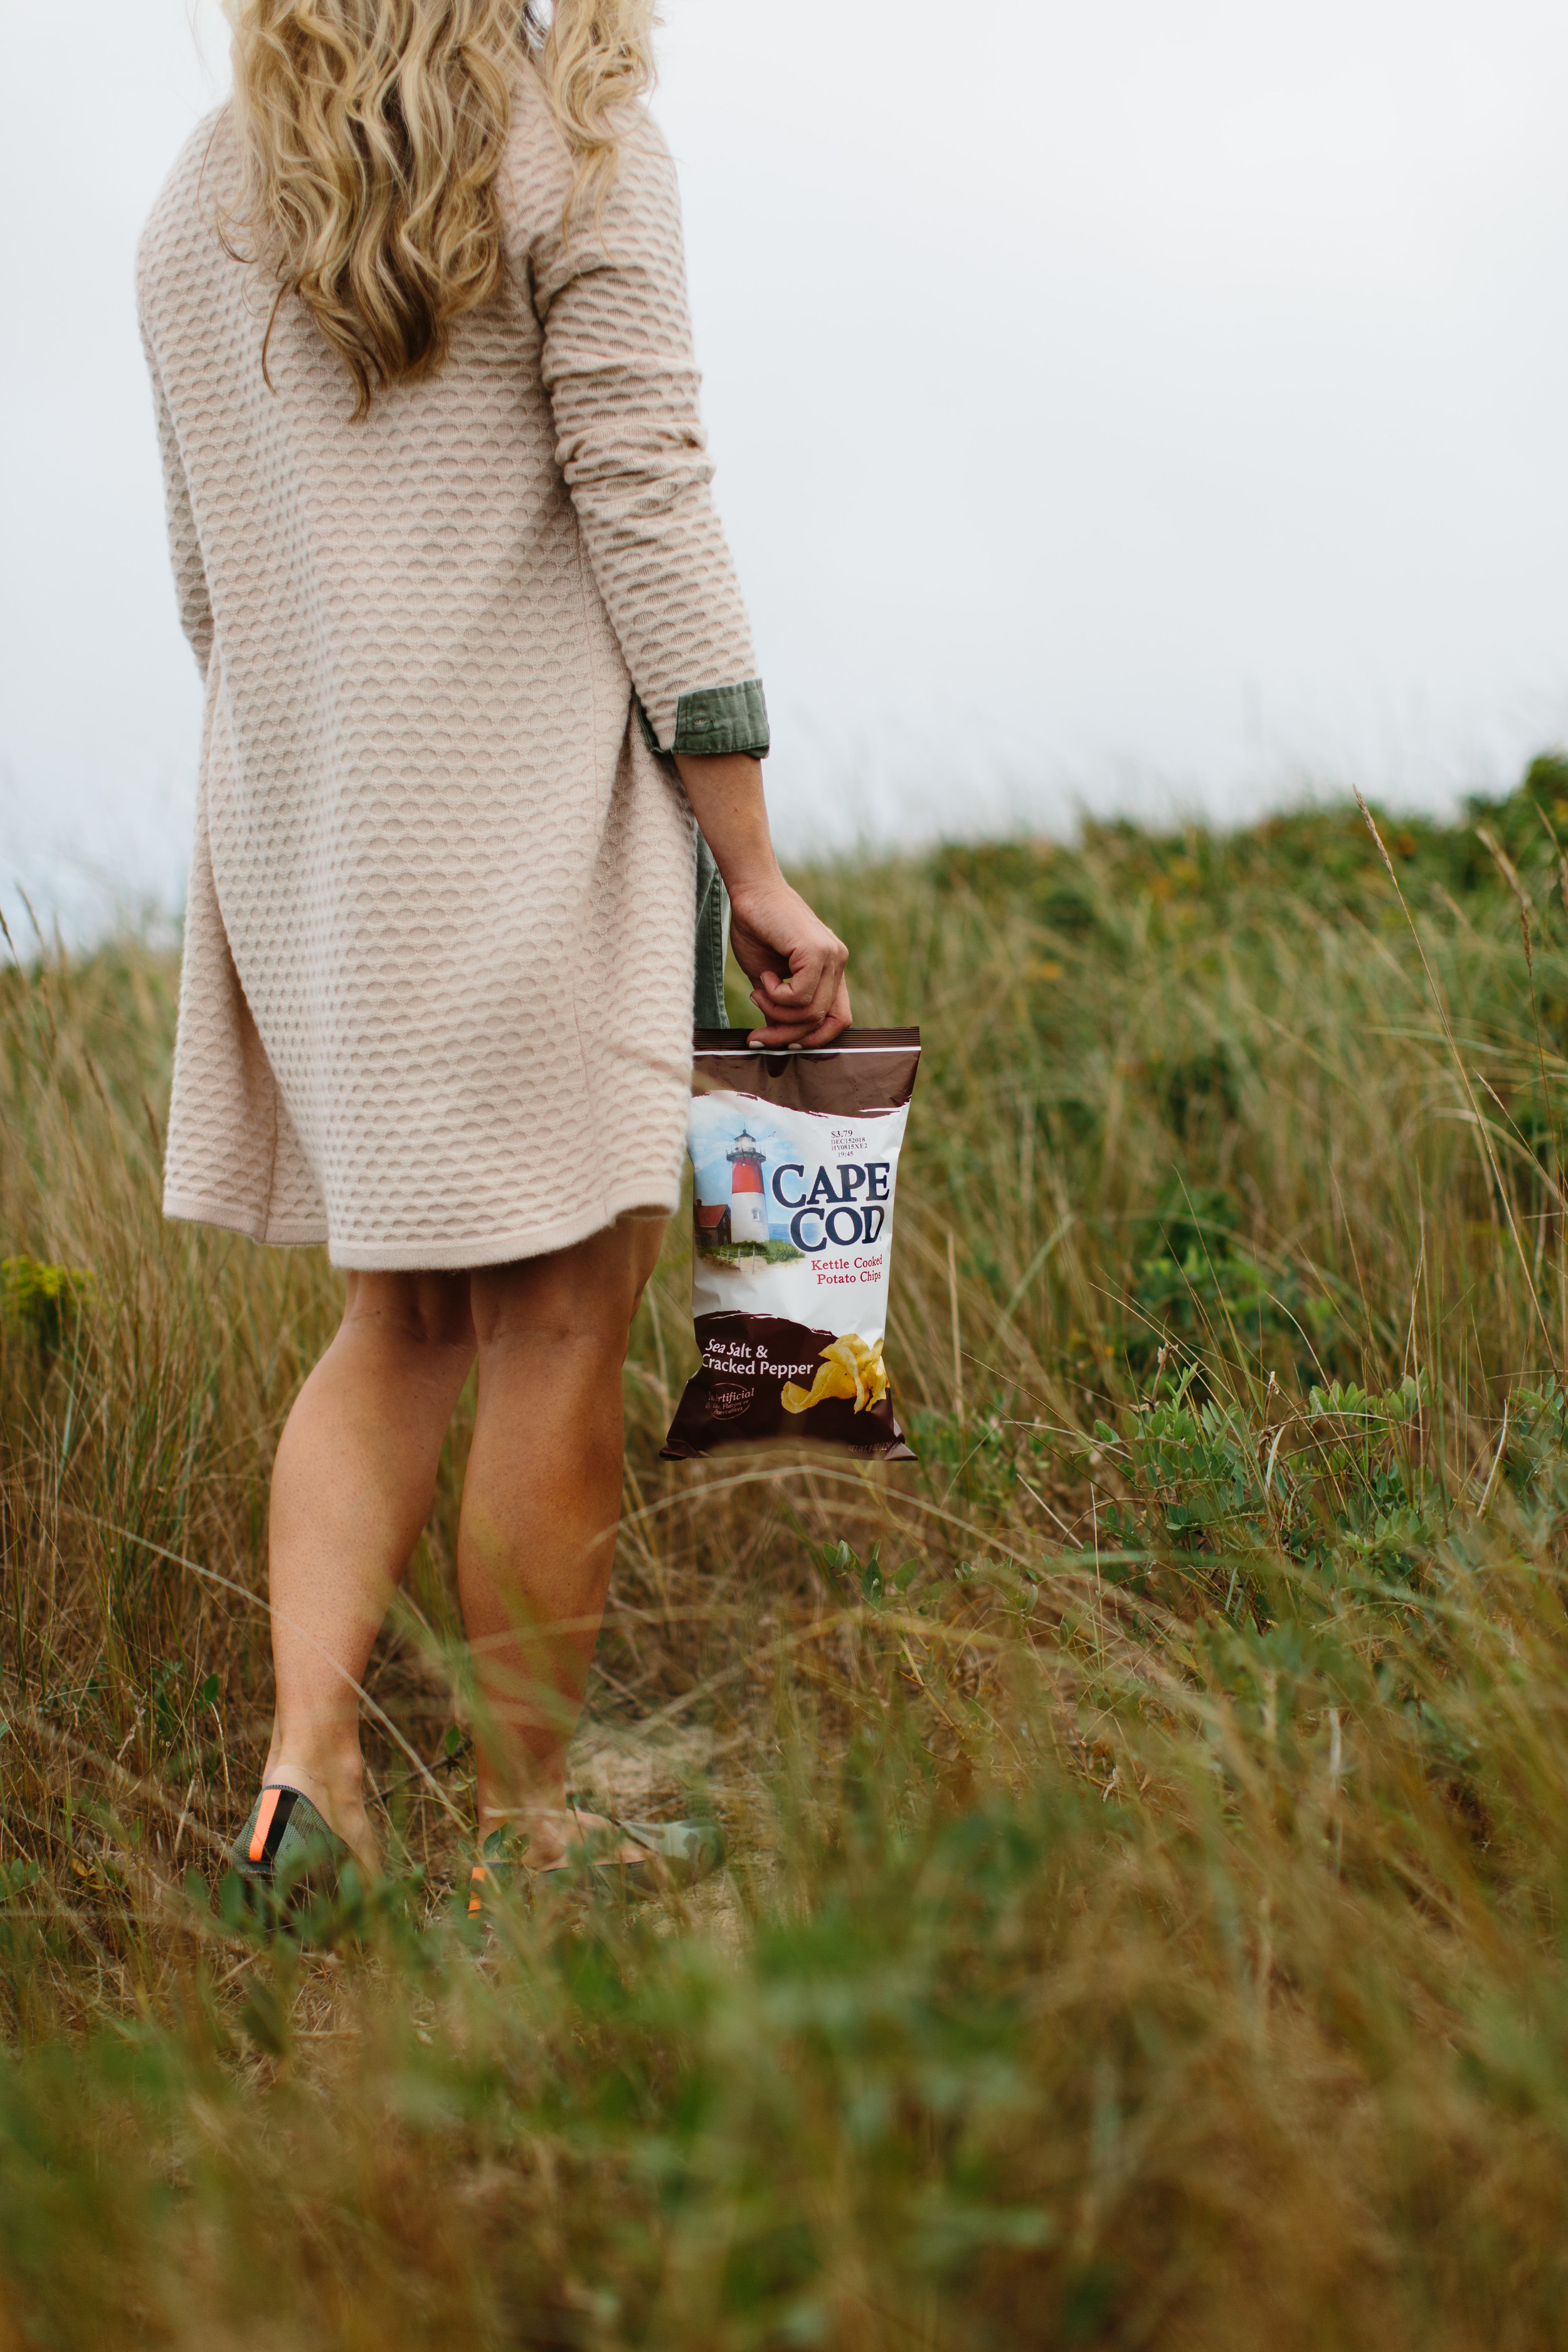 Cape Cod Potato Chips Nantucket New England Travel Blogger Abby Capalbo | Photo: Erin McGinn